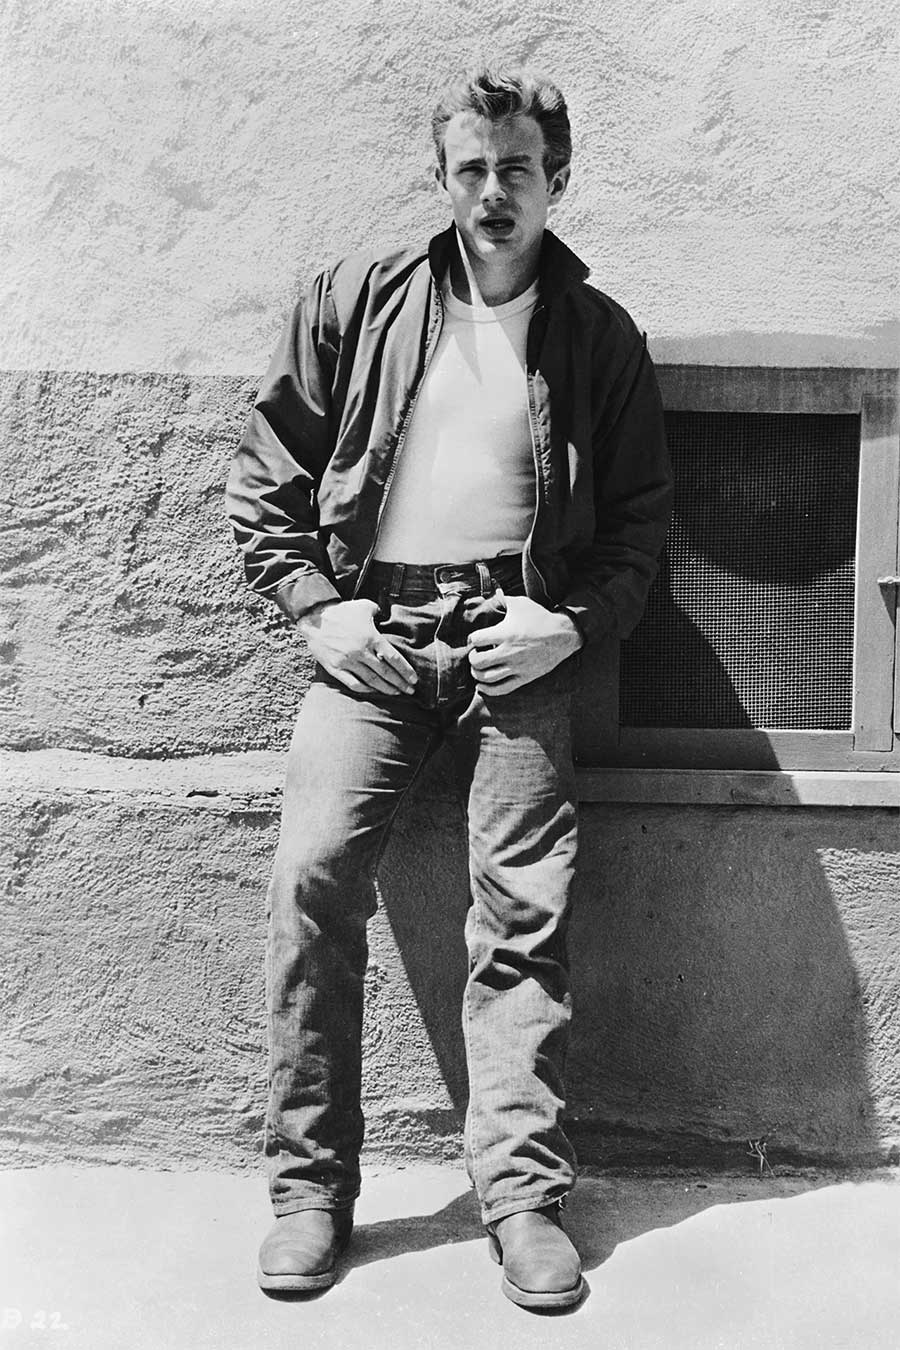 James Dean white shirt and jeans